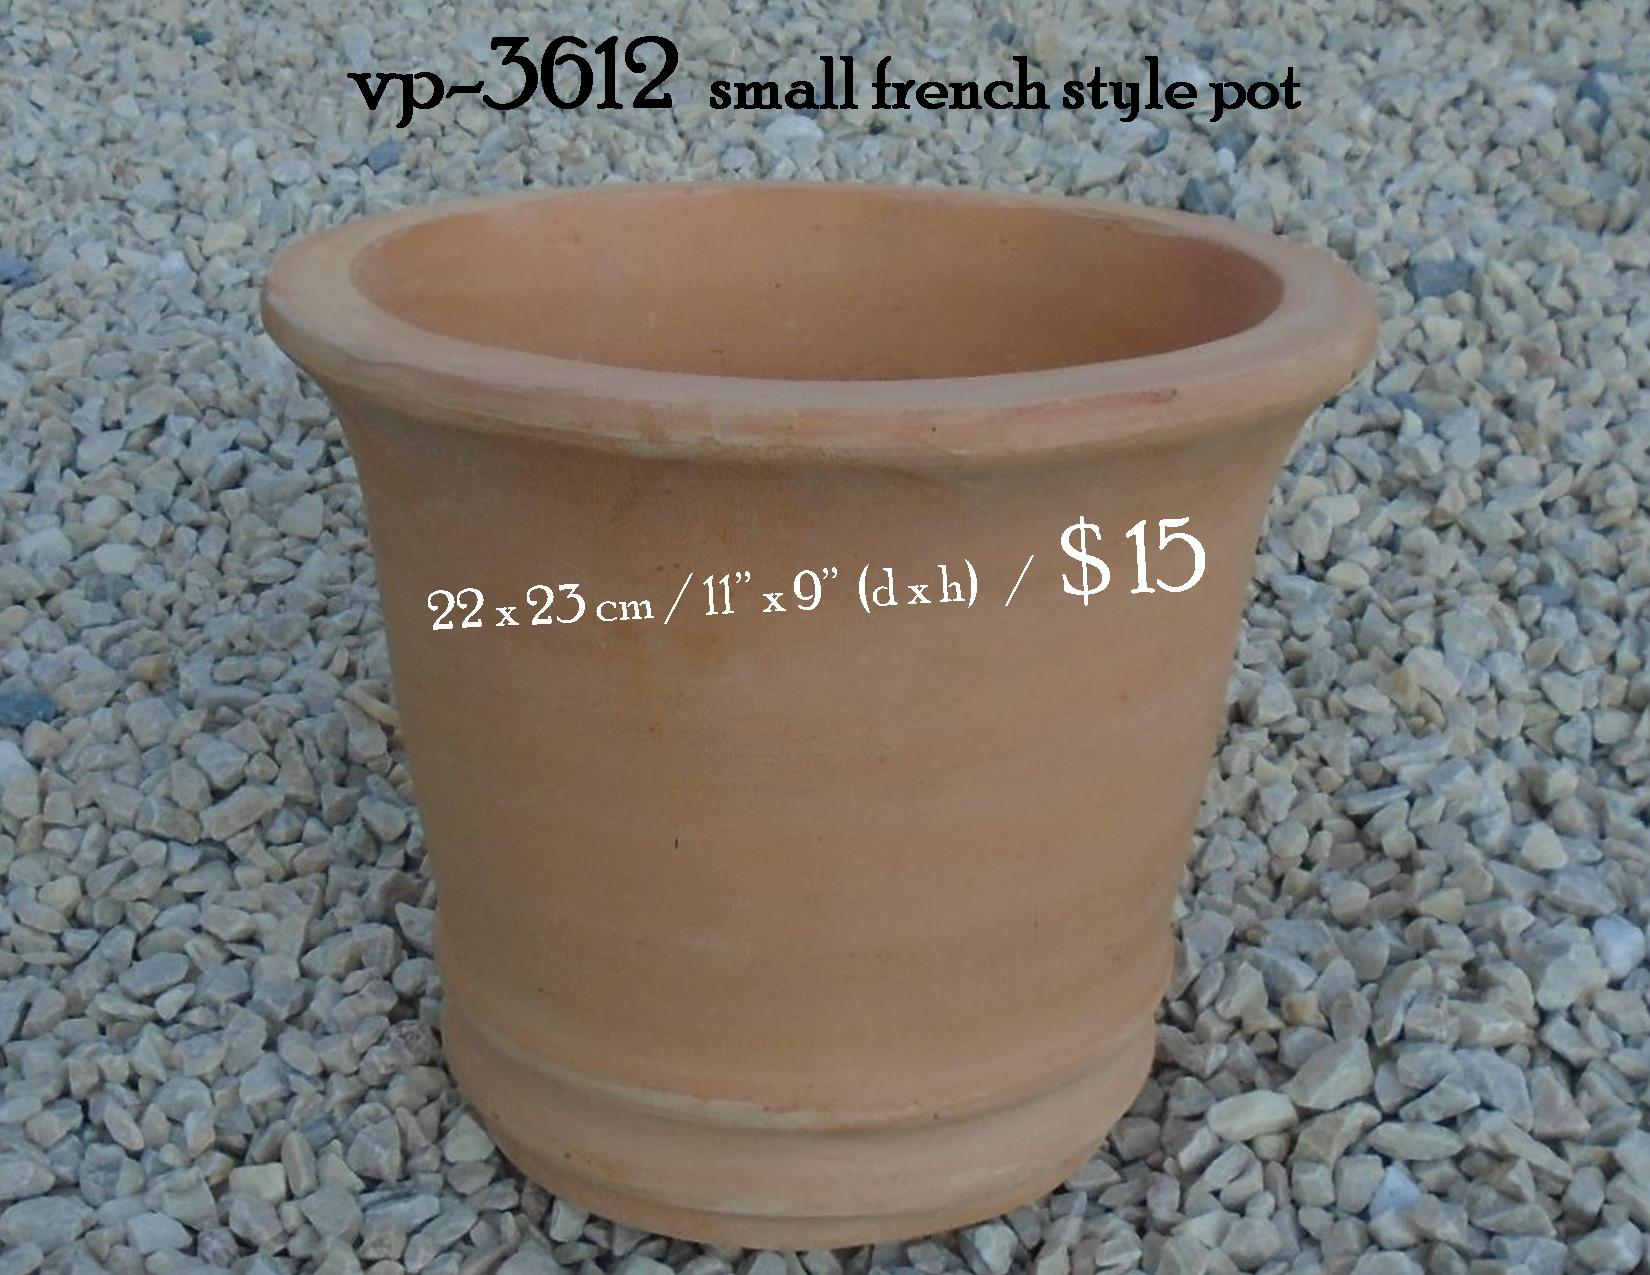 vp-3612  small french style pot